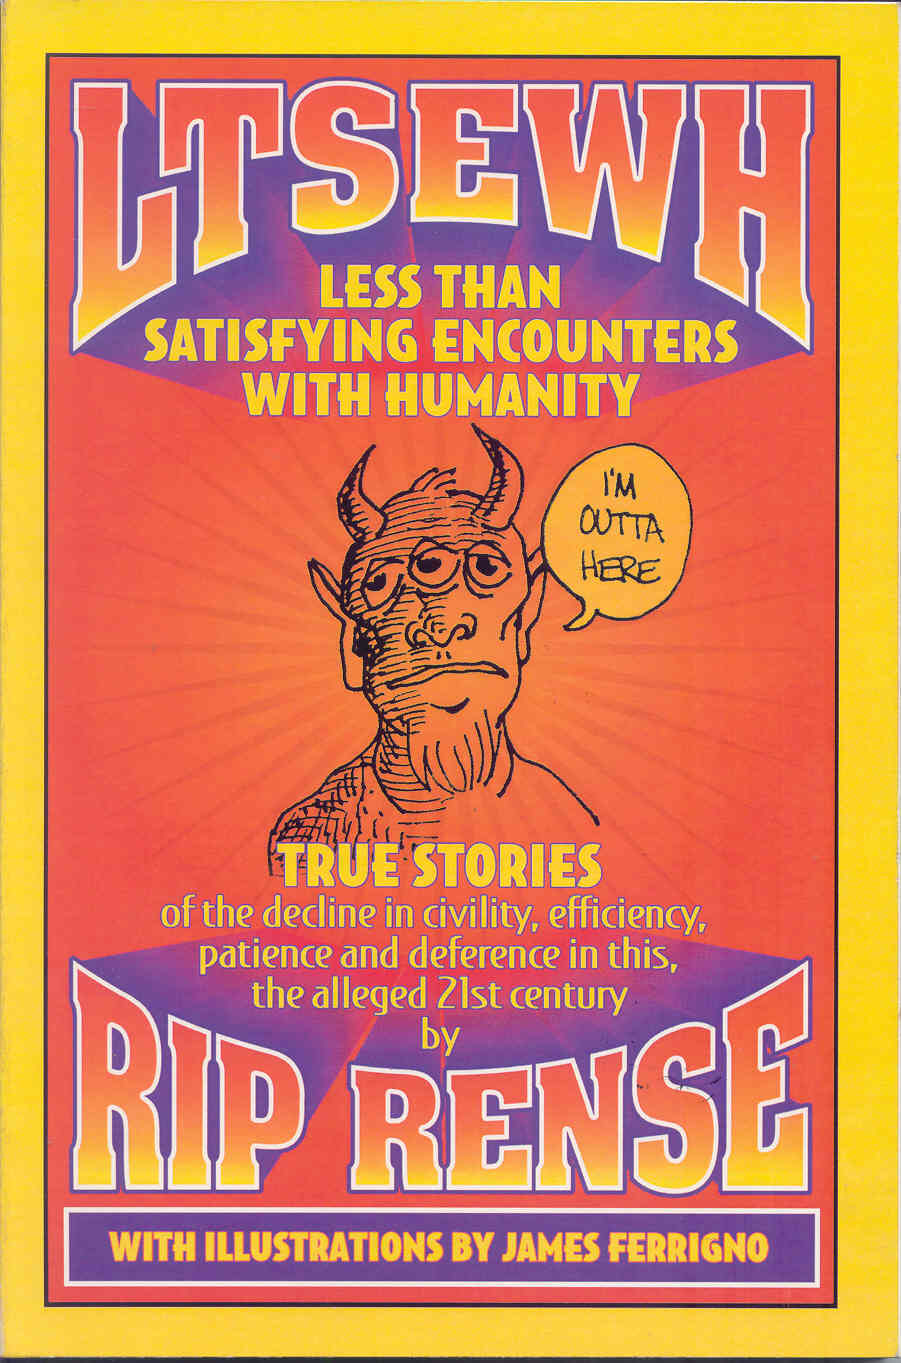 Less than Satisfying Encounters with Humanity, by Rip Rense